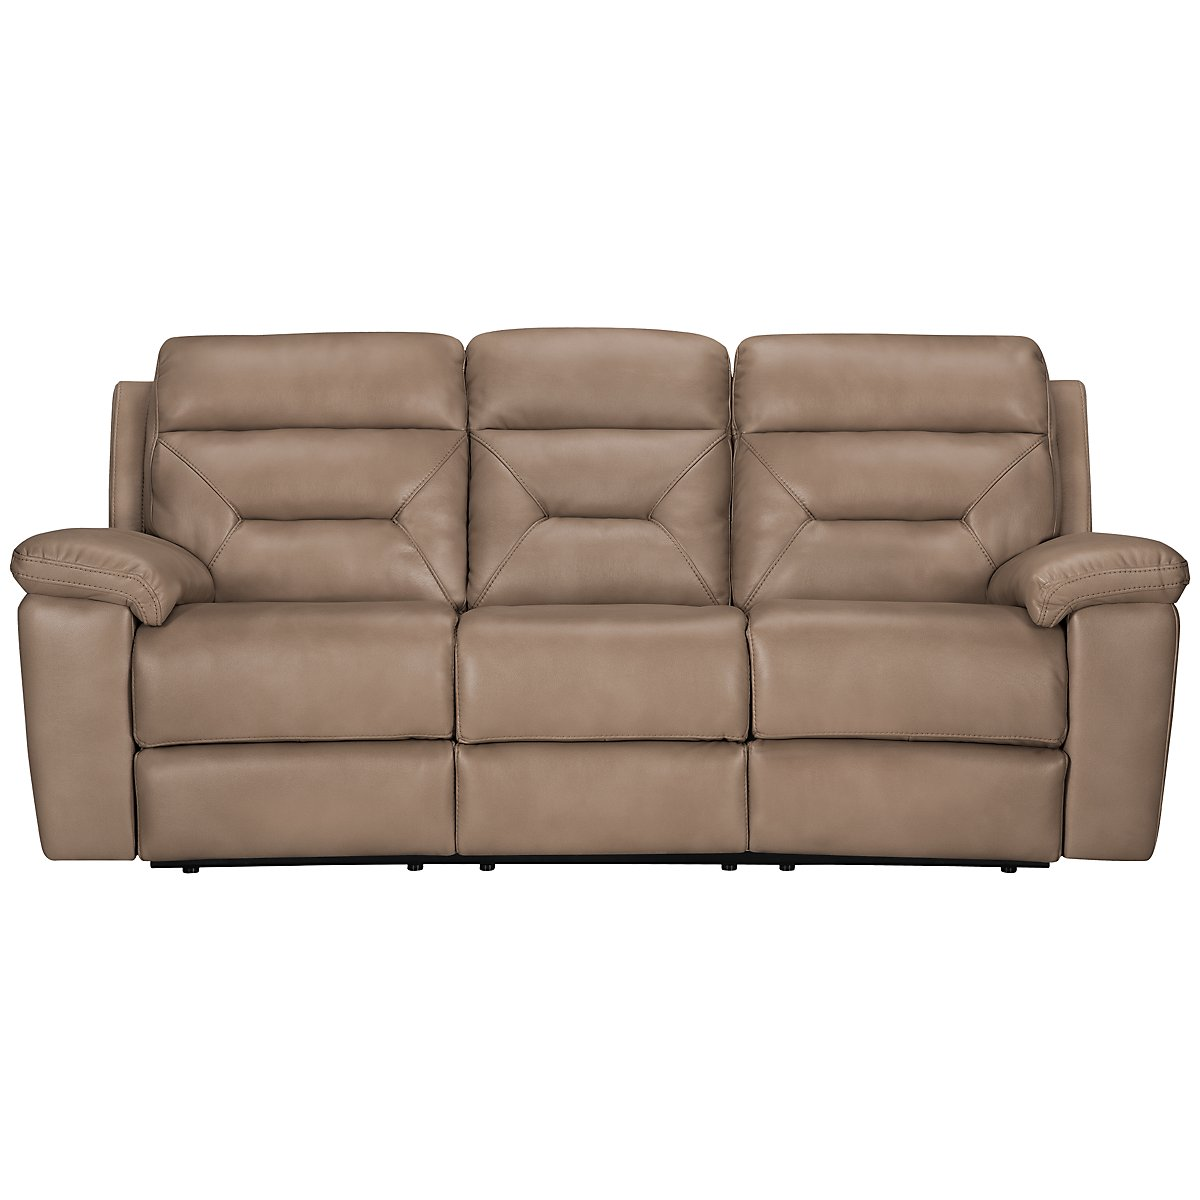 Luxury Microfiber Reclining Sofa 51 In Sofas and Couches Set with Microfiber Reclining Sofa